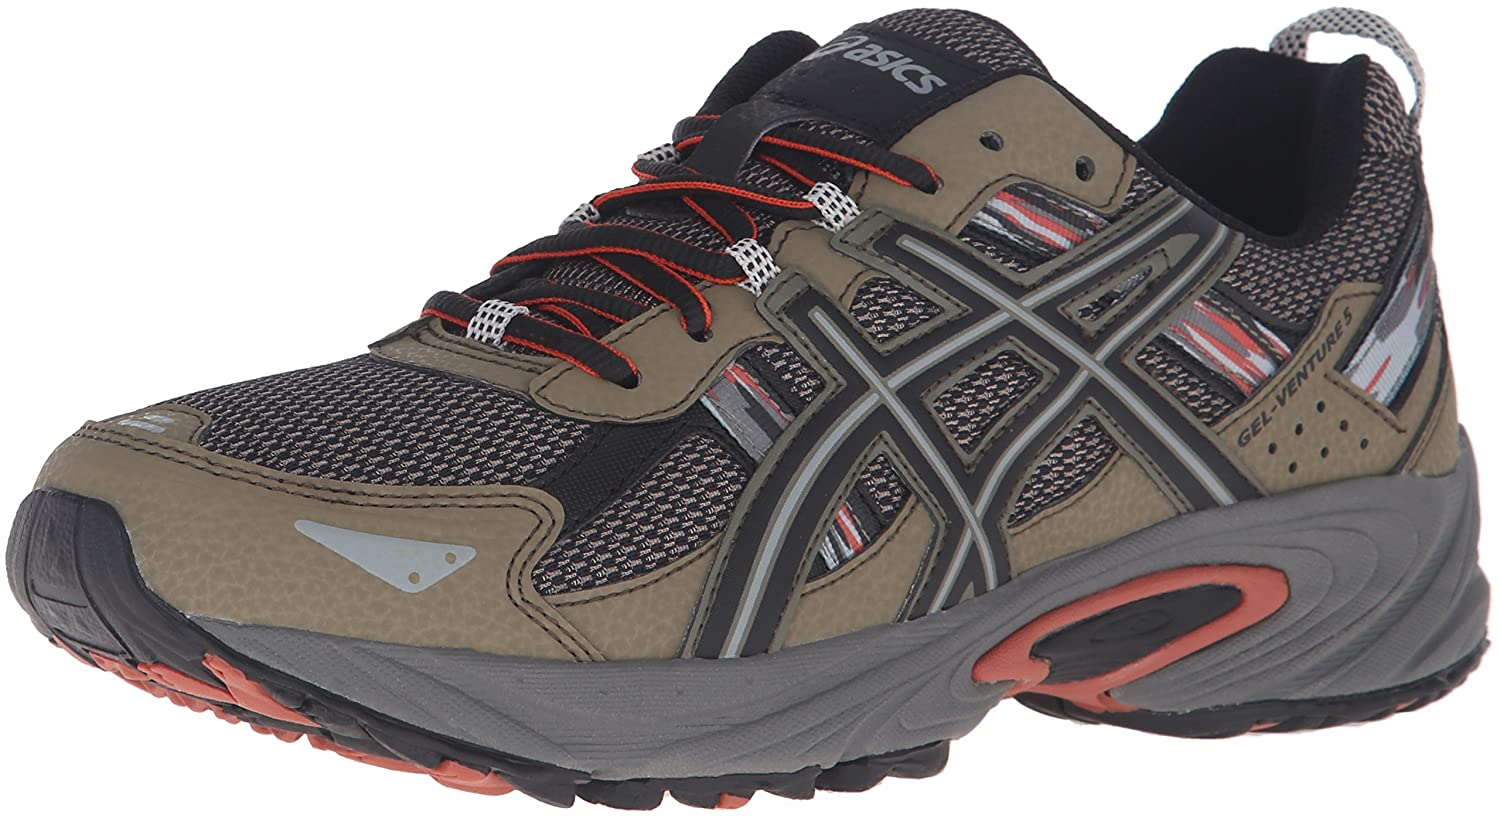 ASICS Men's Gel-Venture 5 5 Trail Runner, B07R3Y4XBY Dusky Green Runner,/Black/Cinnamon, 9 M US [並行輸入品] B07R3Y4XBY, 京たけのこ伝統栽培を守る会Shop:bc984447 --- anime-portal.club